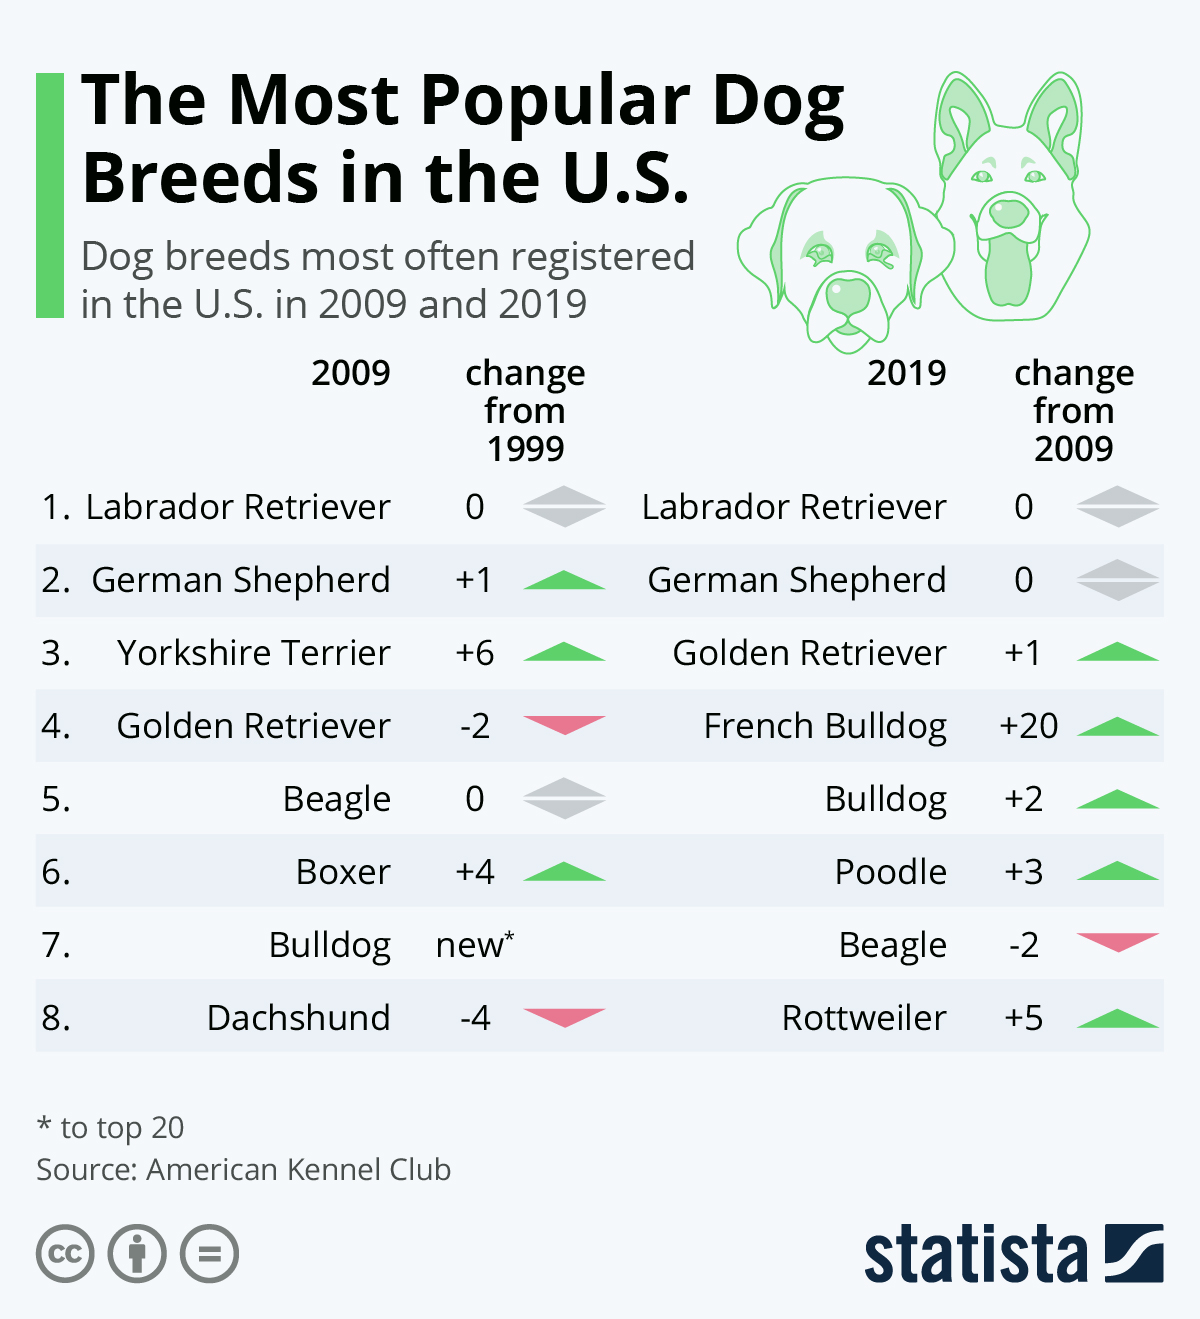 The Most Popular Dog Breeds in the U.S. #Infographic